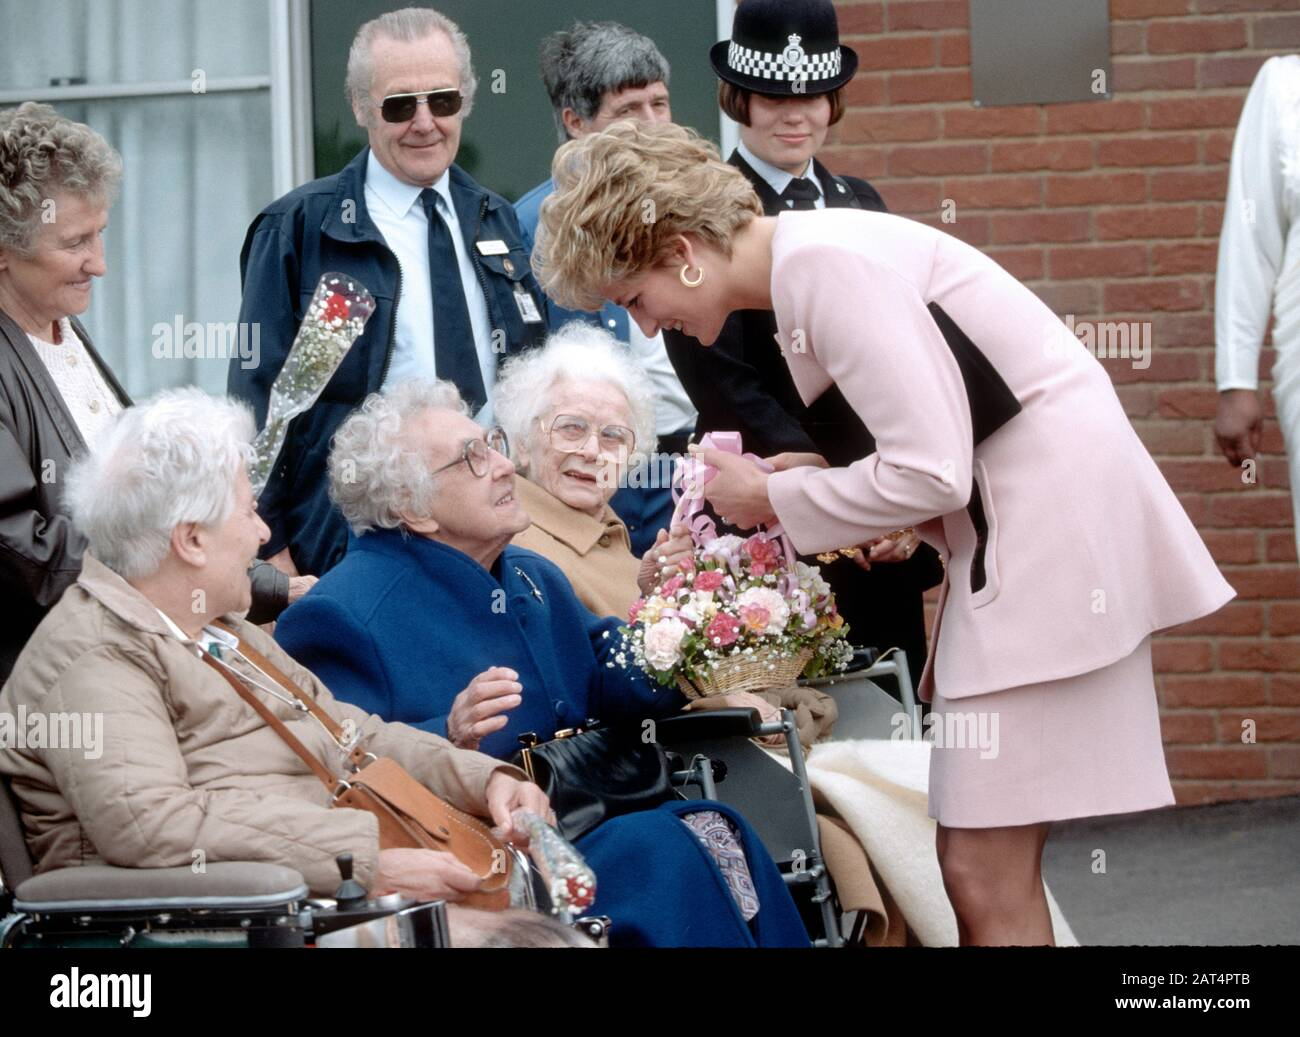 Prince Charles Princess Diana Visits High Resolution Stock Photography And Images Alamy,American Airlines Baggage Allowance To Mexico